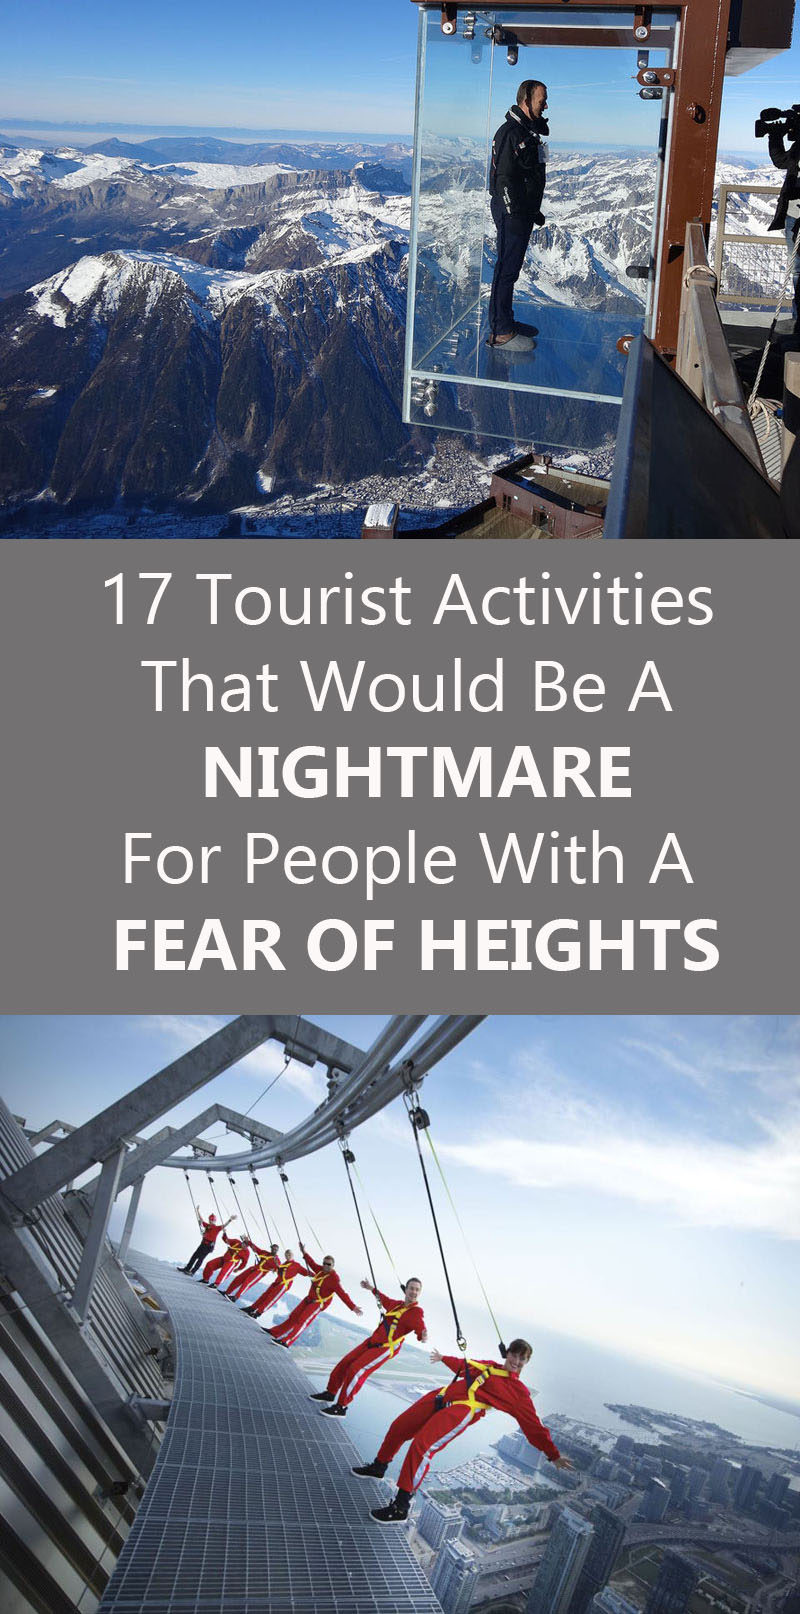 17 Tourist Activities That Would Be A Nightmare For People With A Fear Of Heights